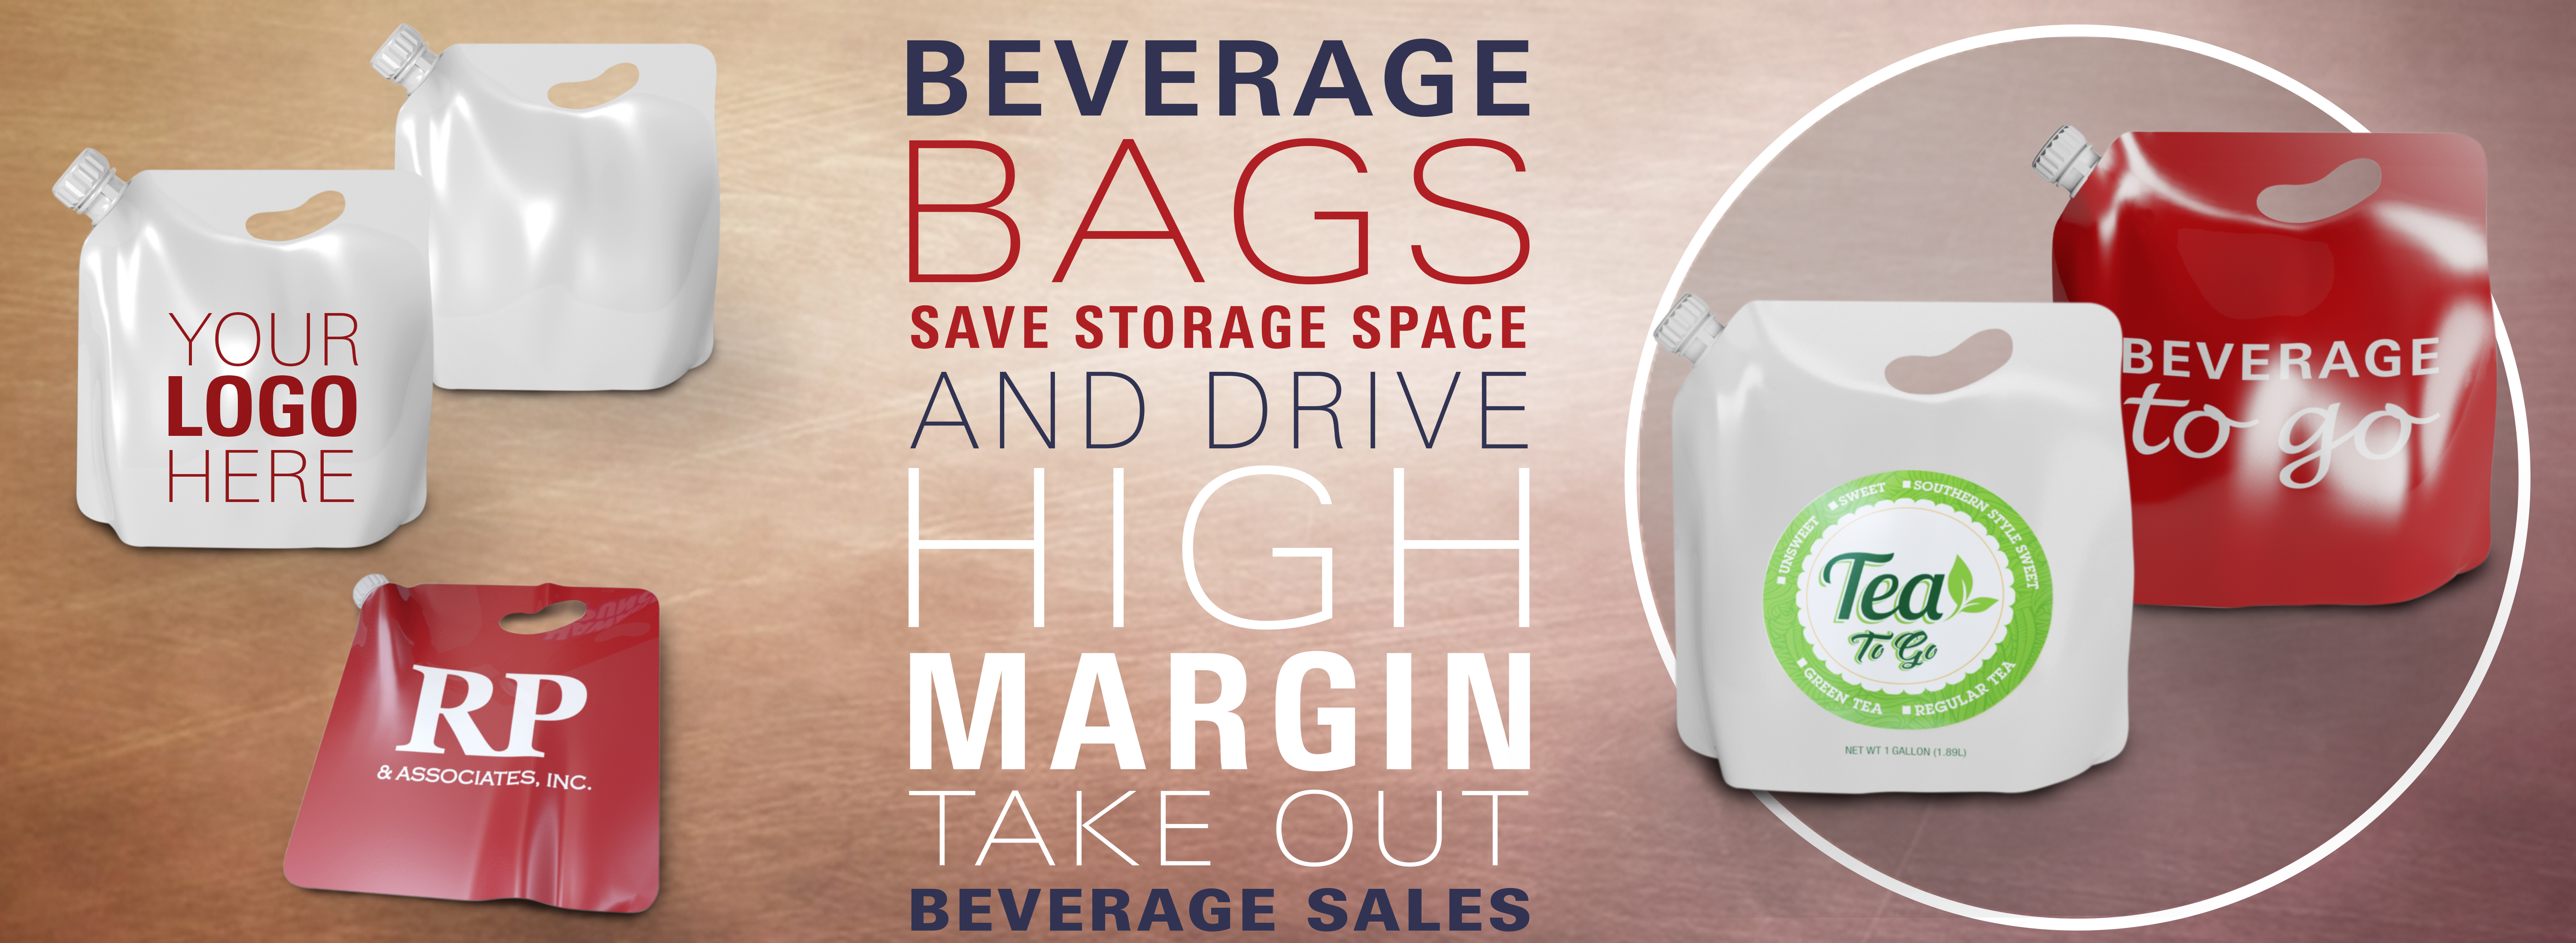 Beverage Bags for catering and takeout